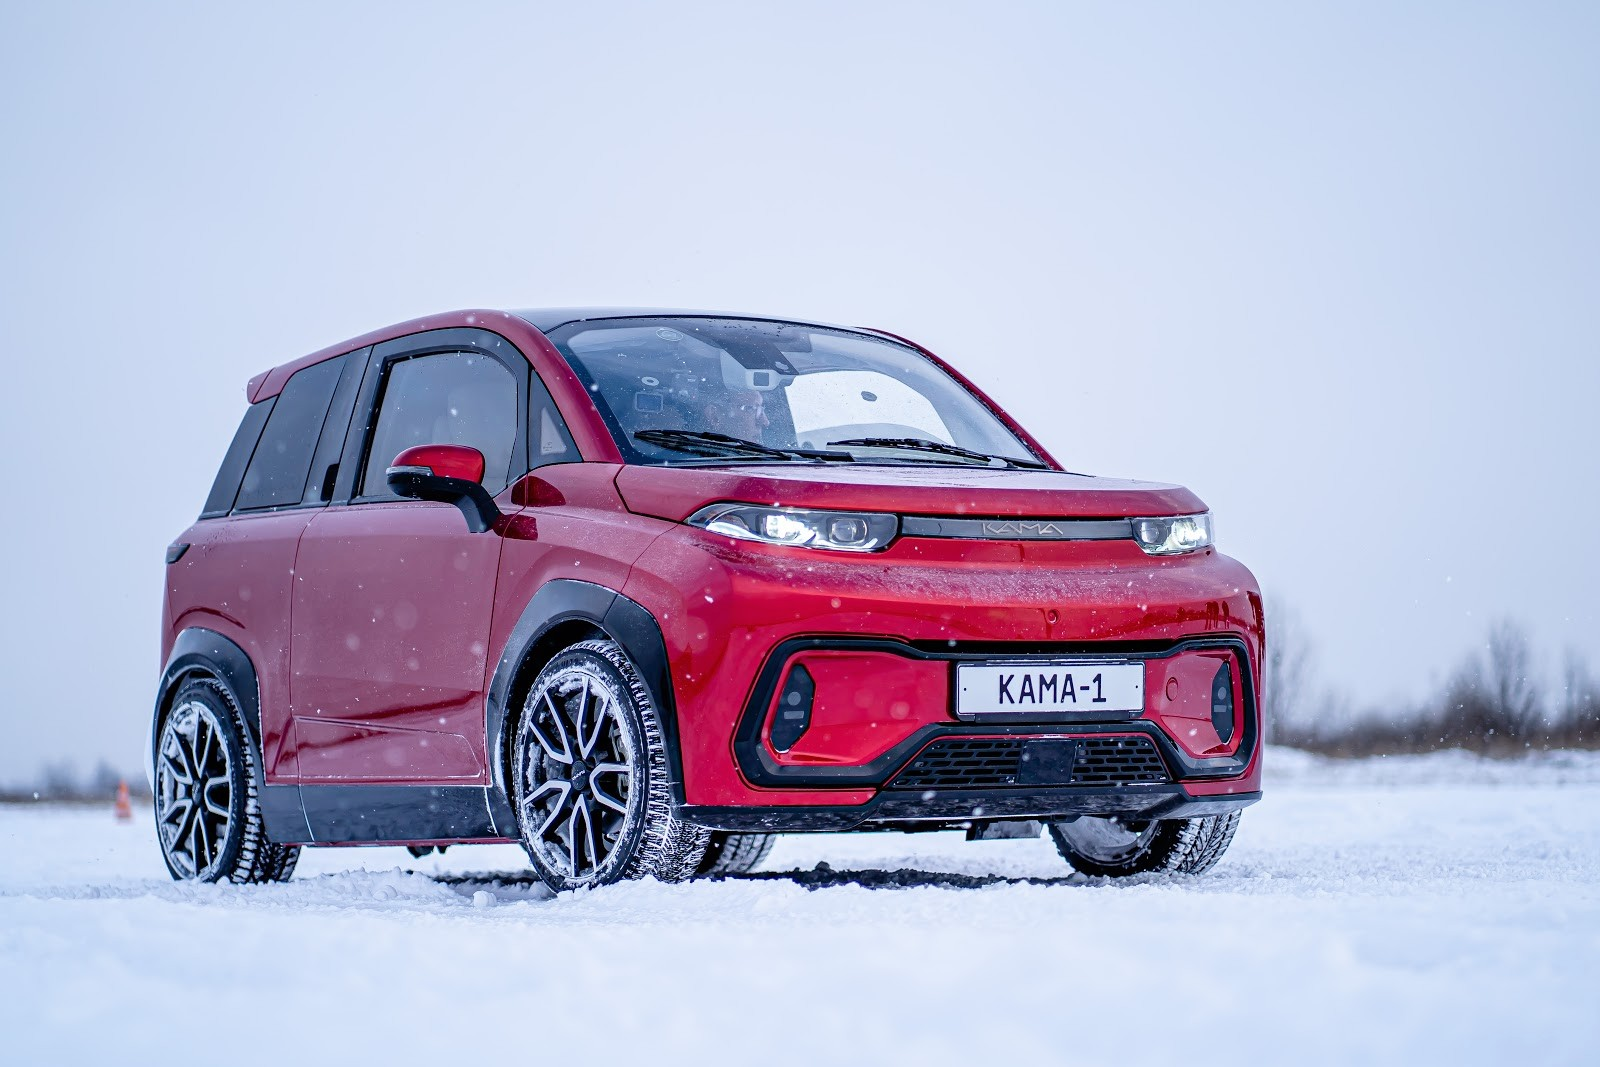 KamAZ Automotive Plant has revealed its plans for the compact-sized all-electric hatchback set to become Russia's first production EV.